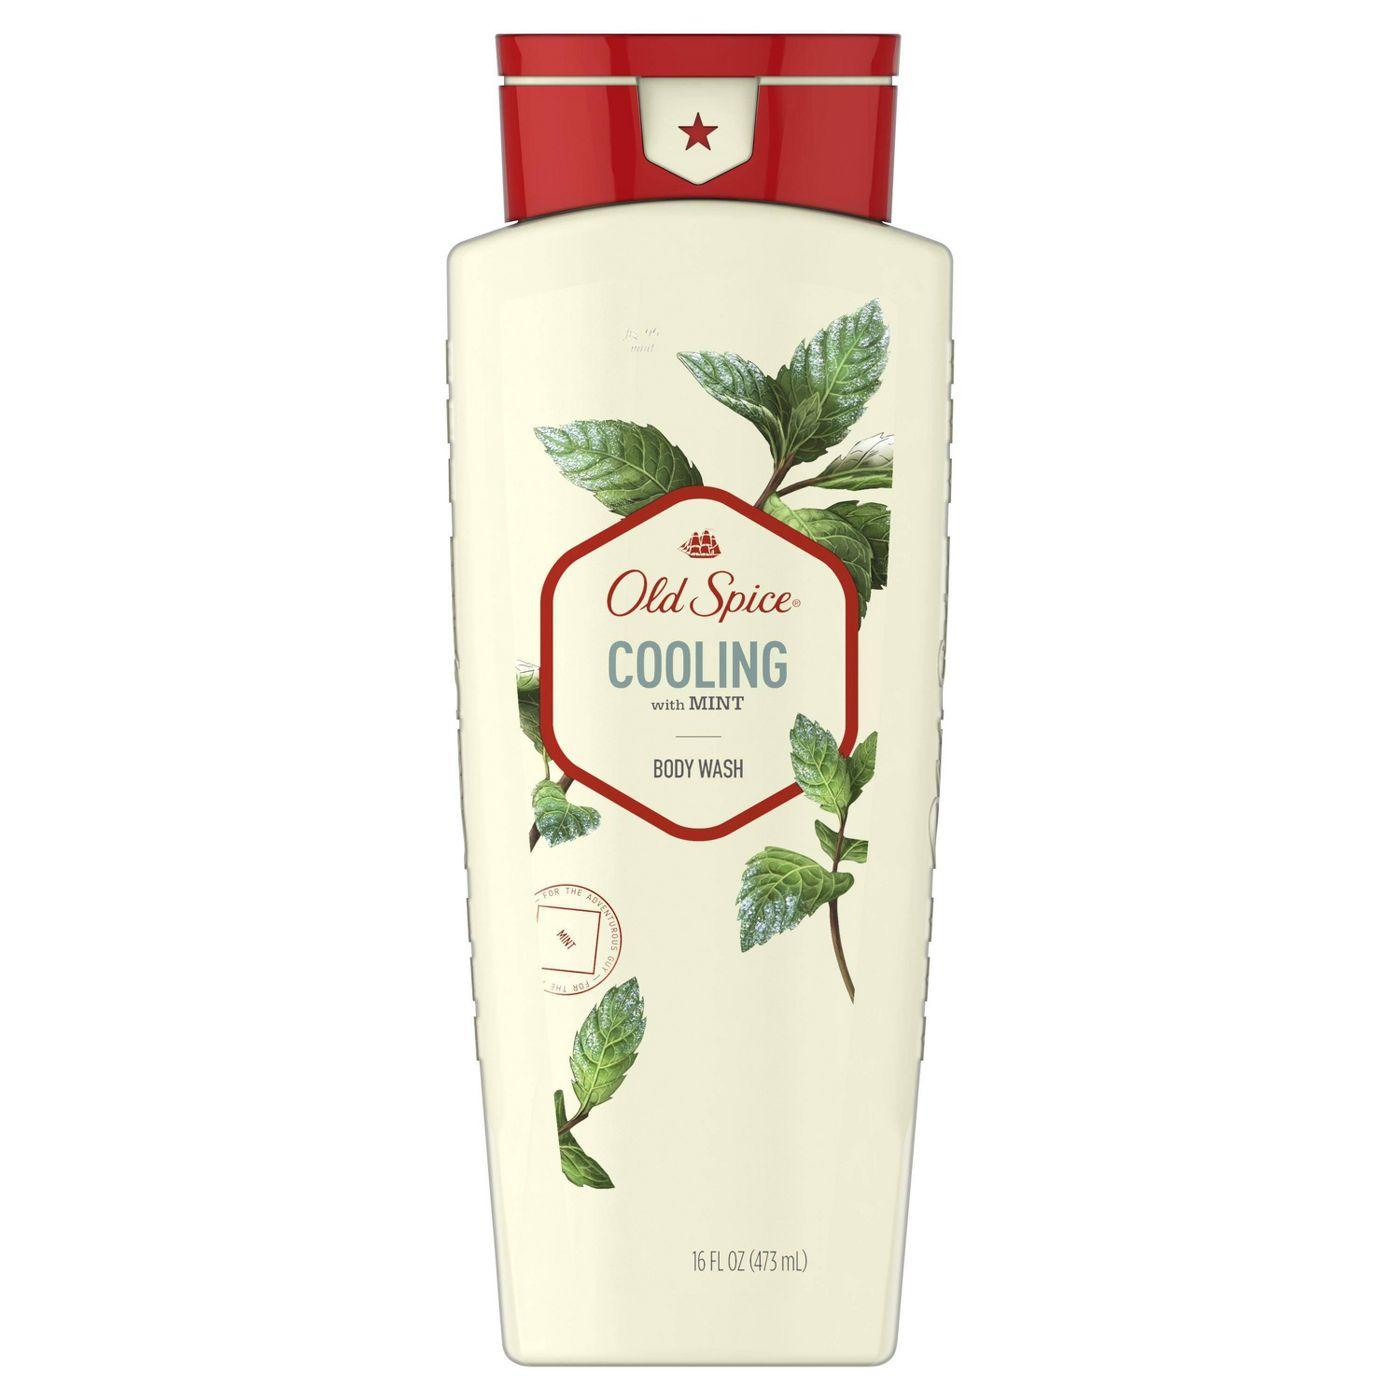 Old Spice Body Wash for Men Inspired by Nature Invigorate With Cooling Mint, 16 fl oz